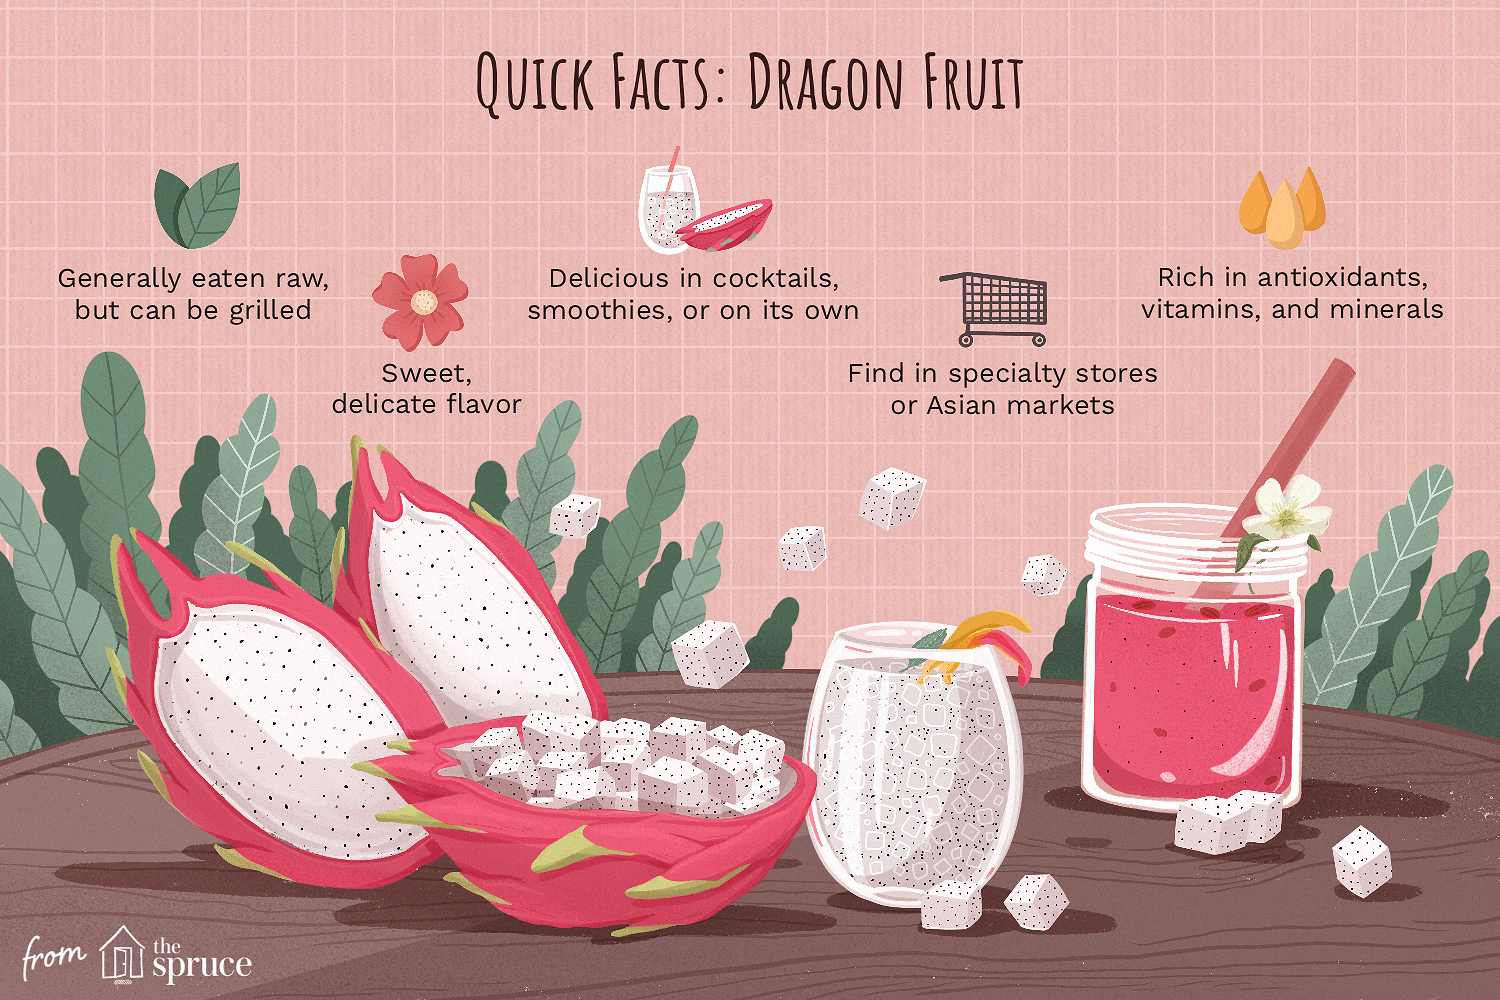 Some facts about dragon fruit